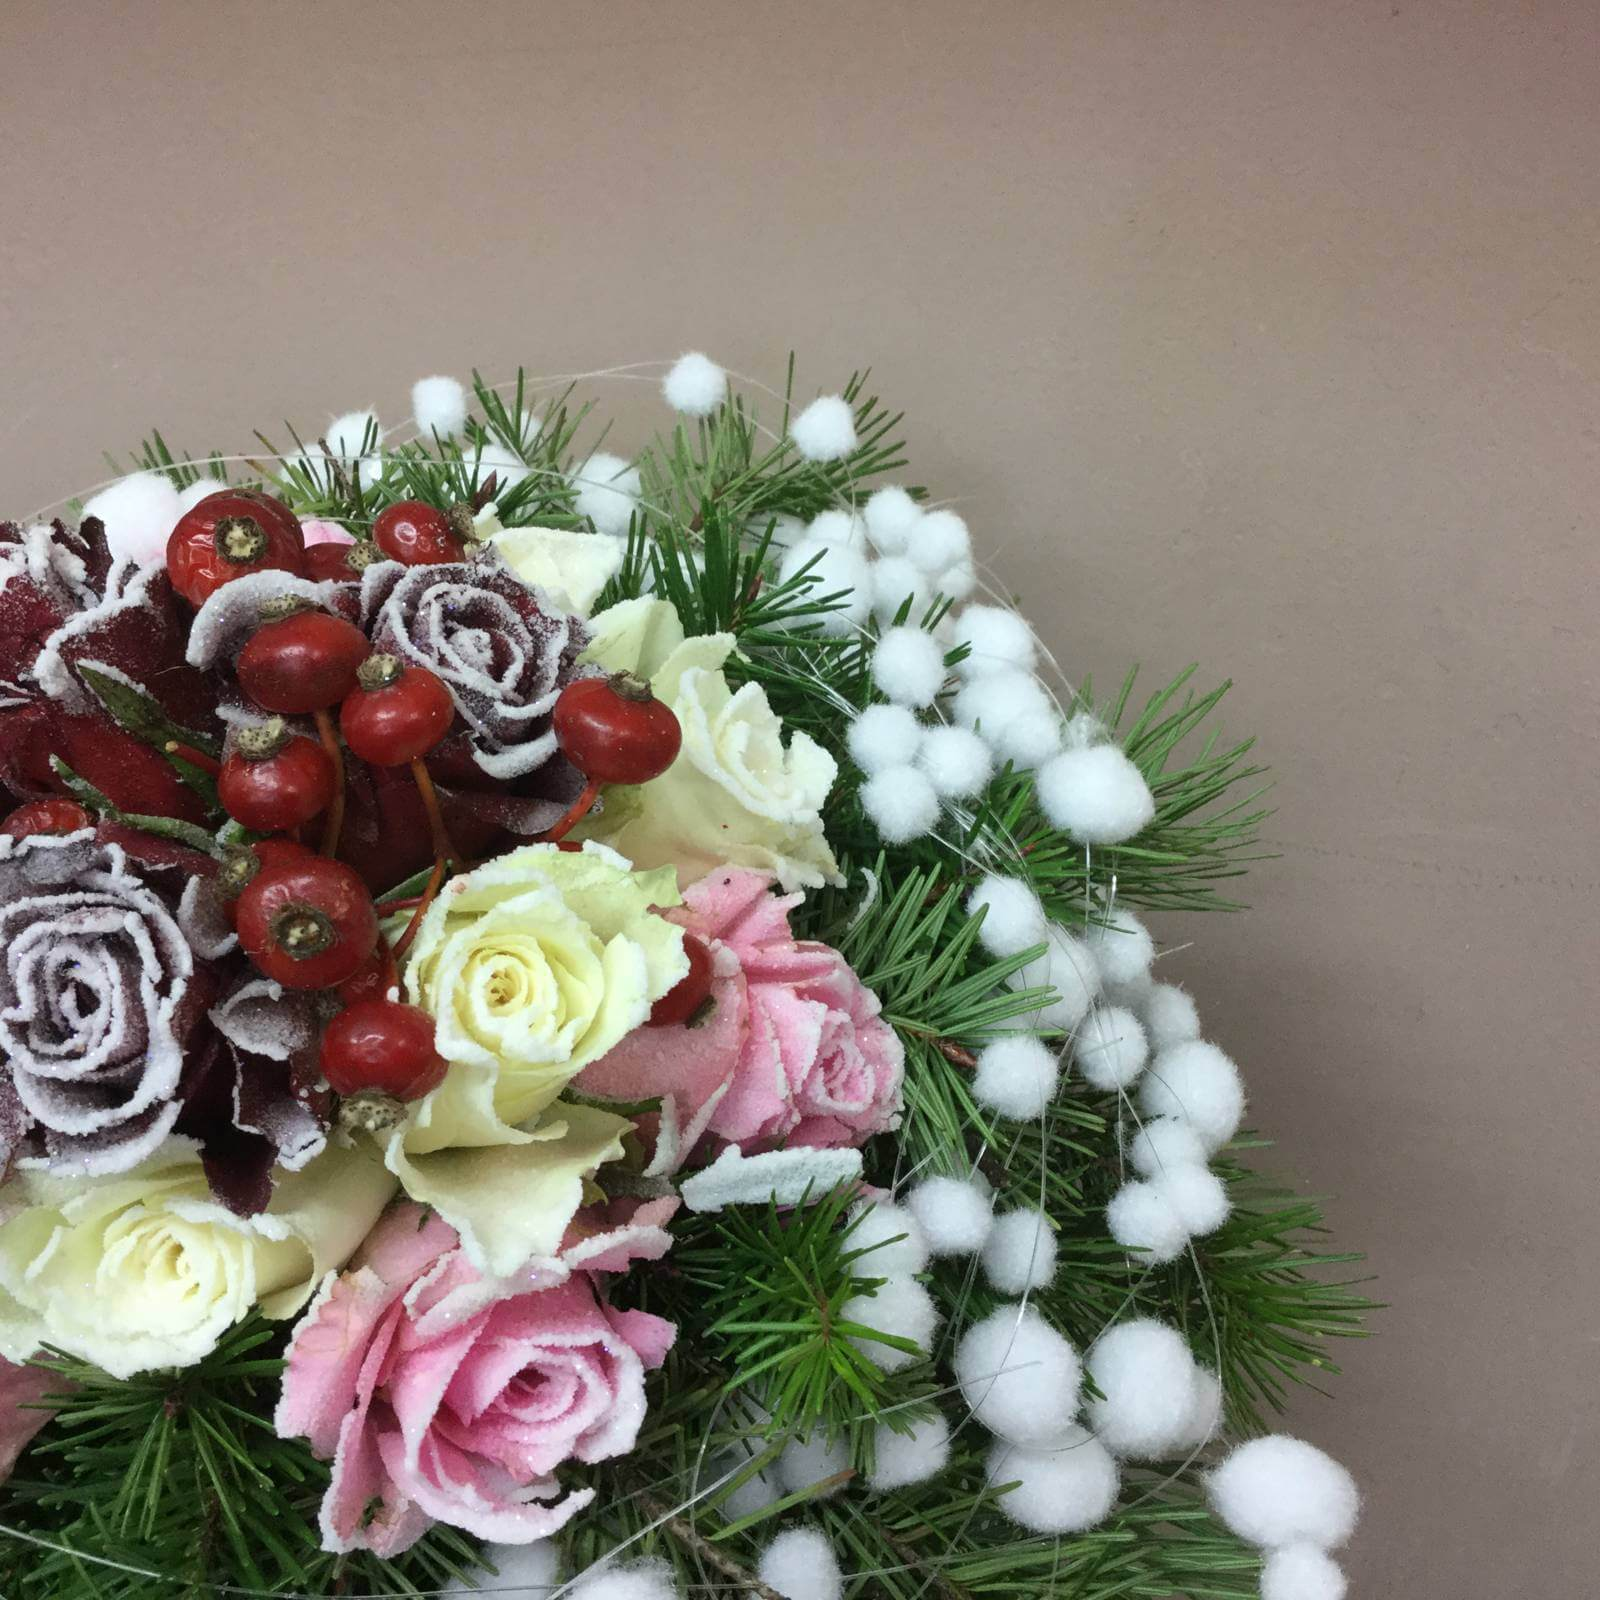 Floral composition for Christmas